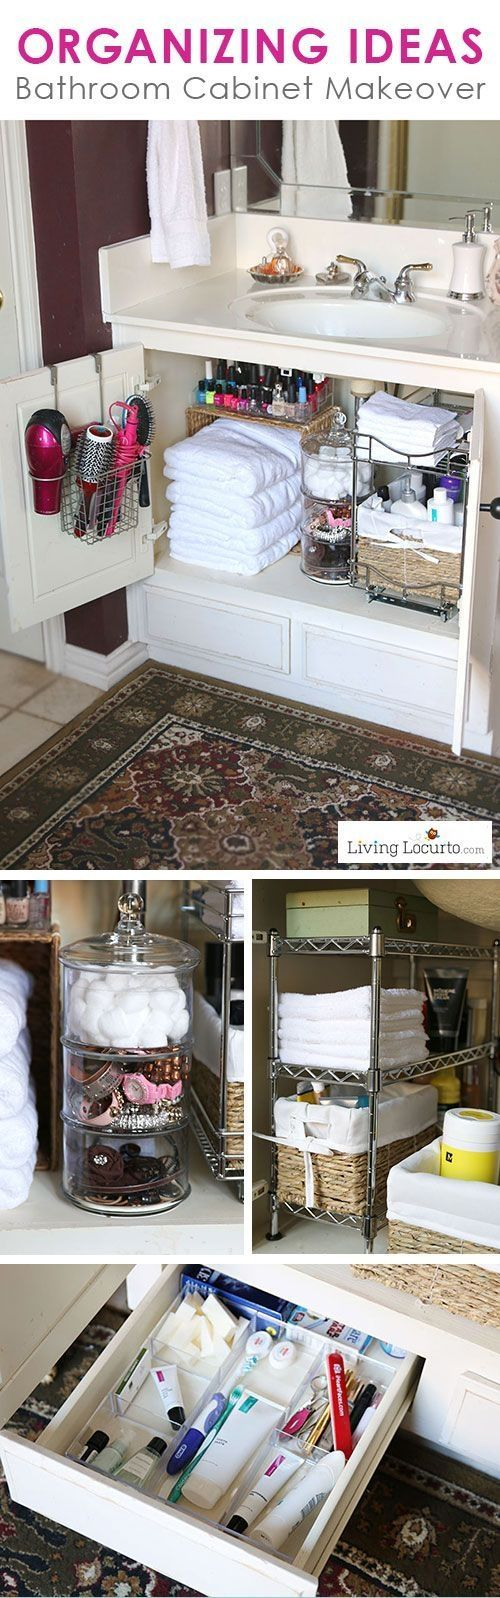 Quick Bathroom Organization Ideas | Check out this bathroom to get some great ideas!